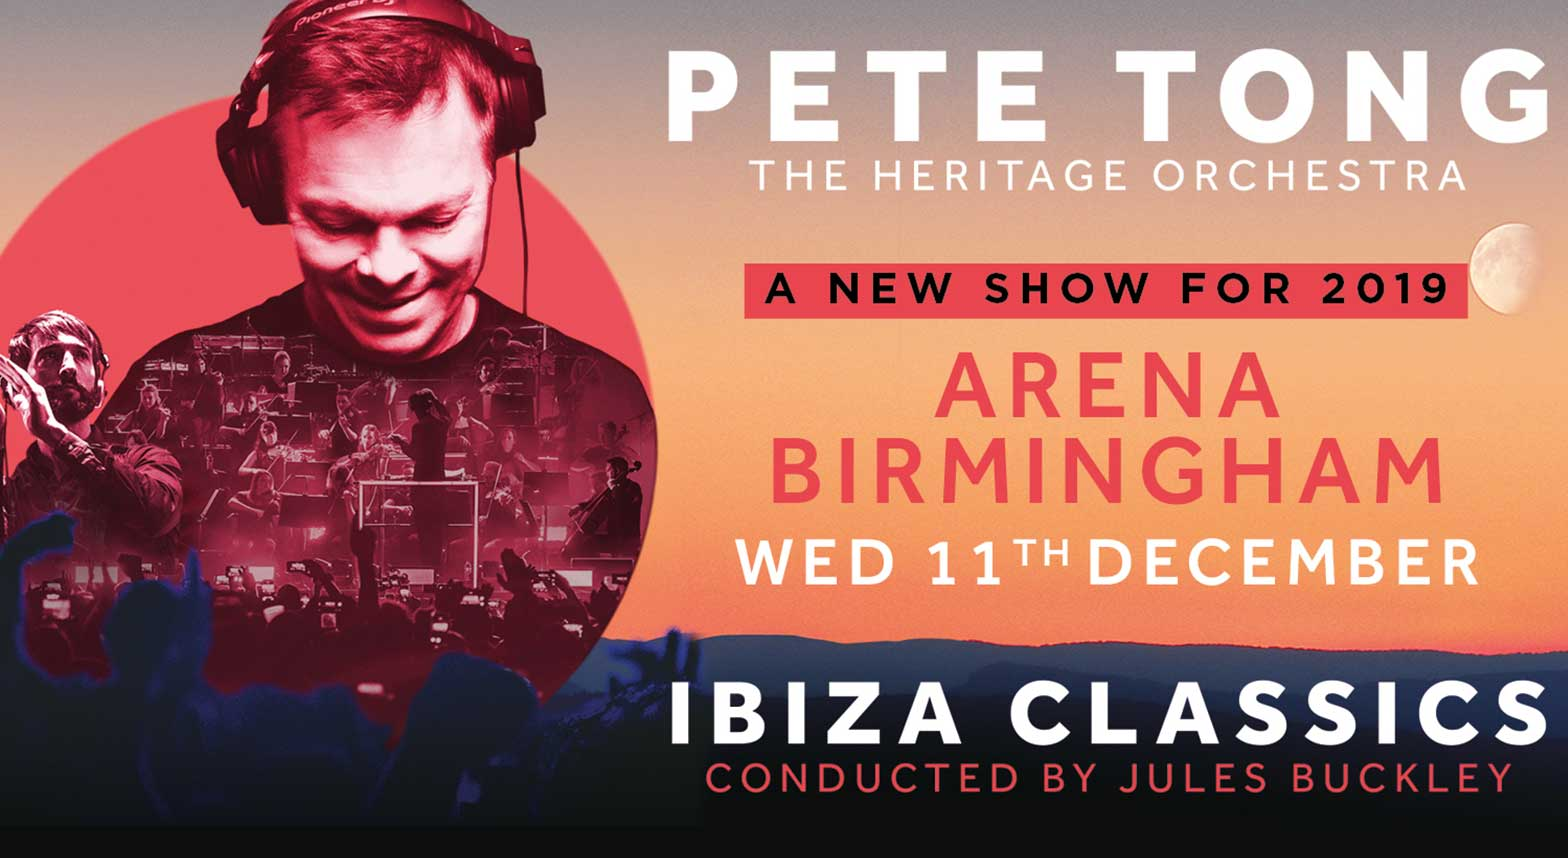 Pete Tong Hospitality Tickets